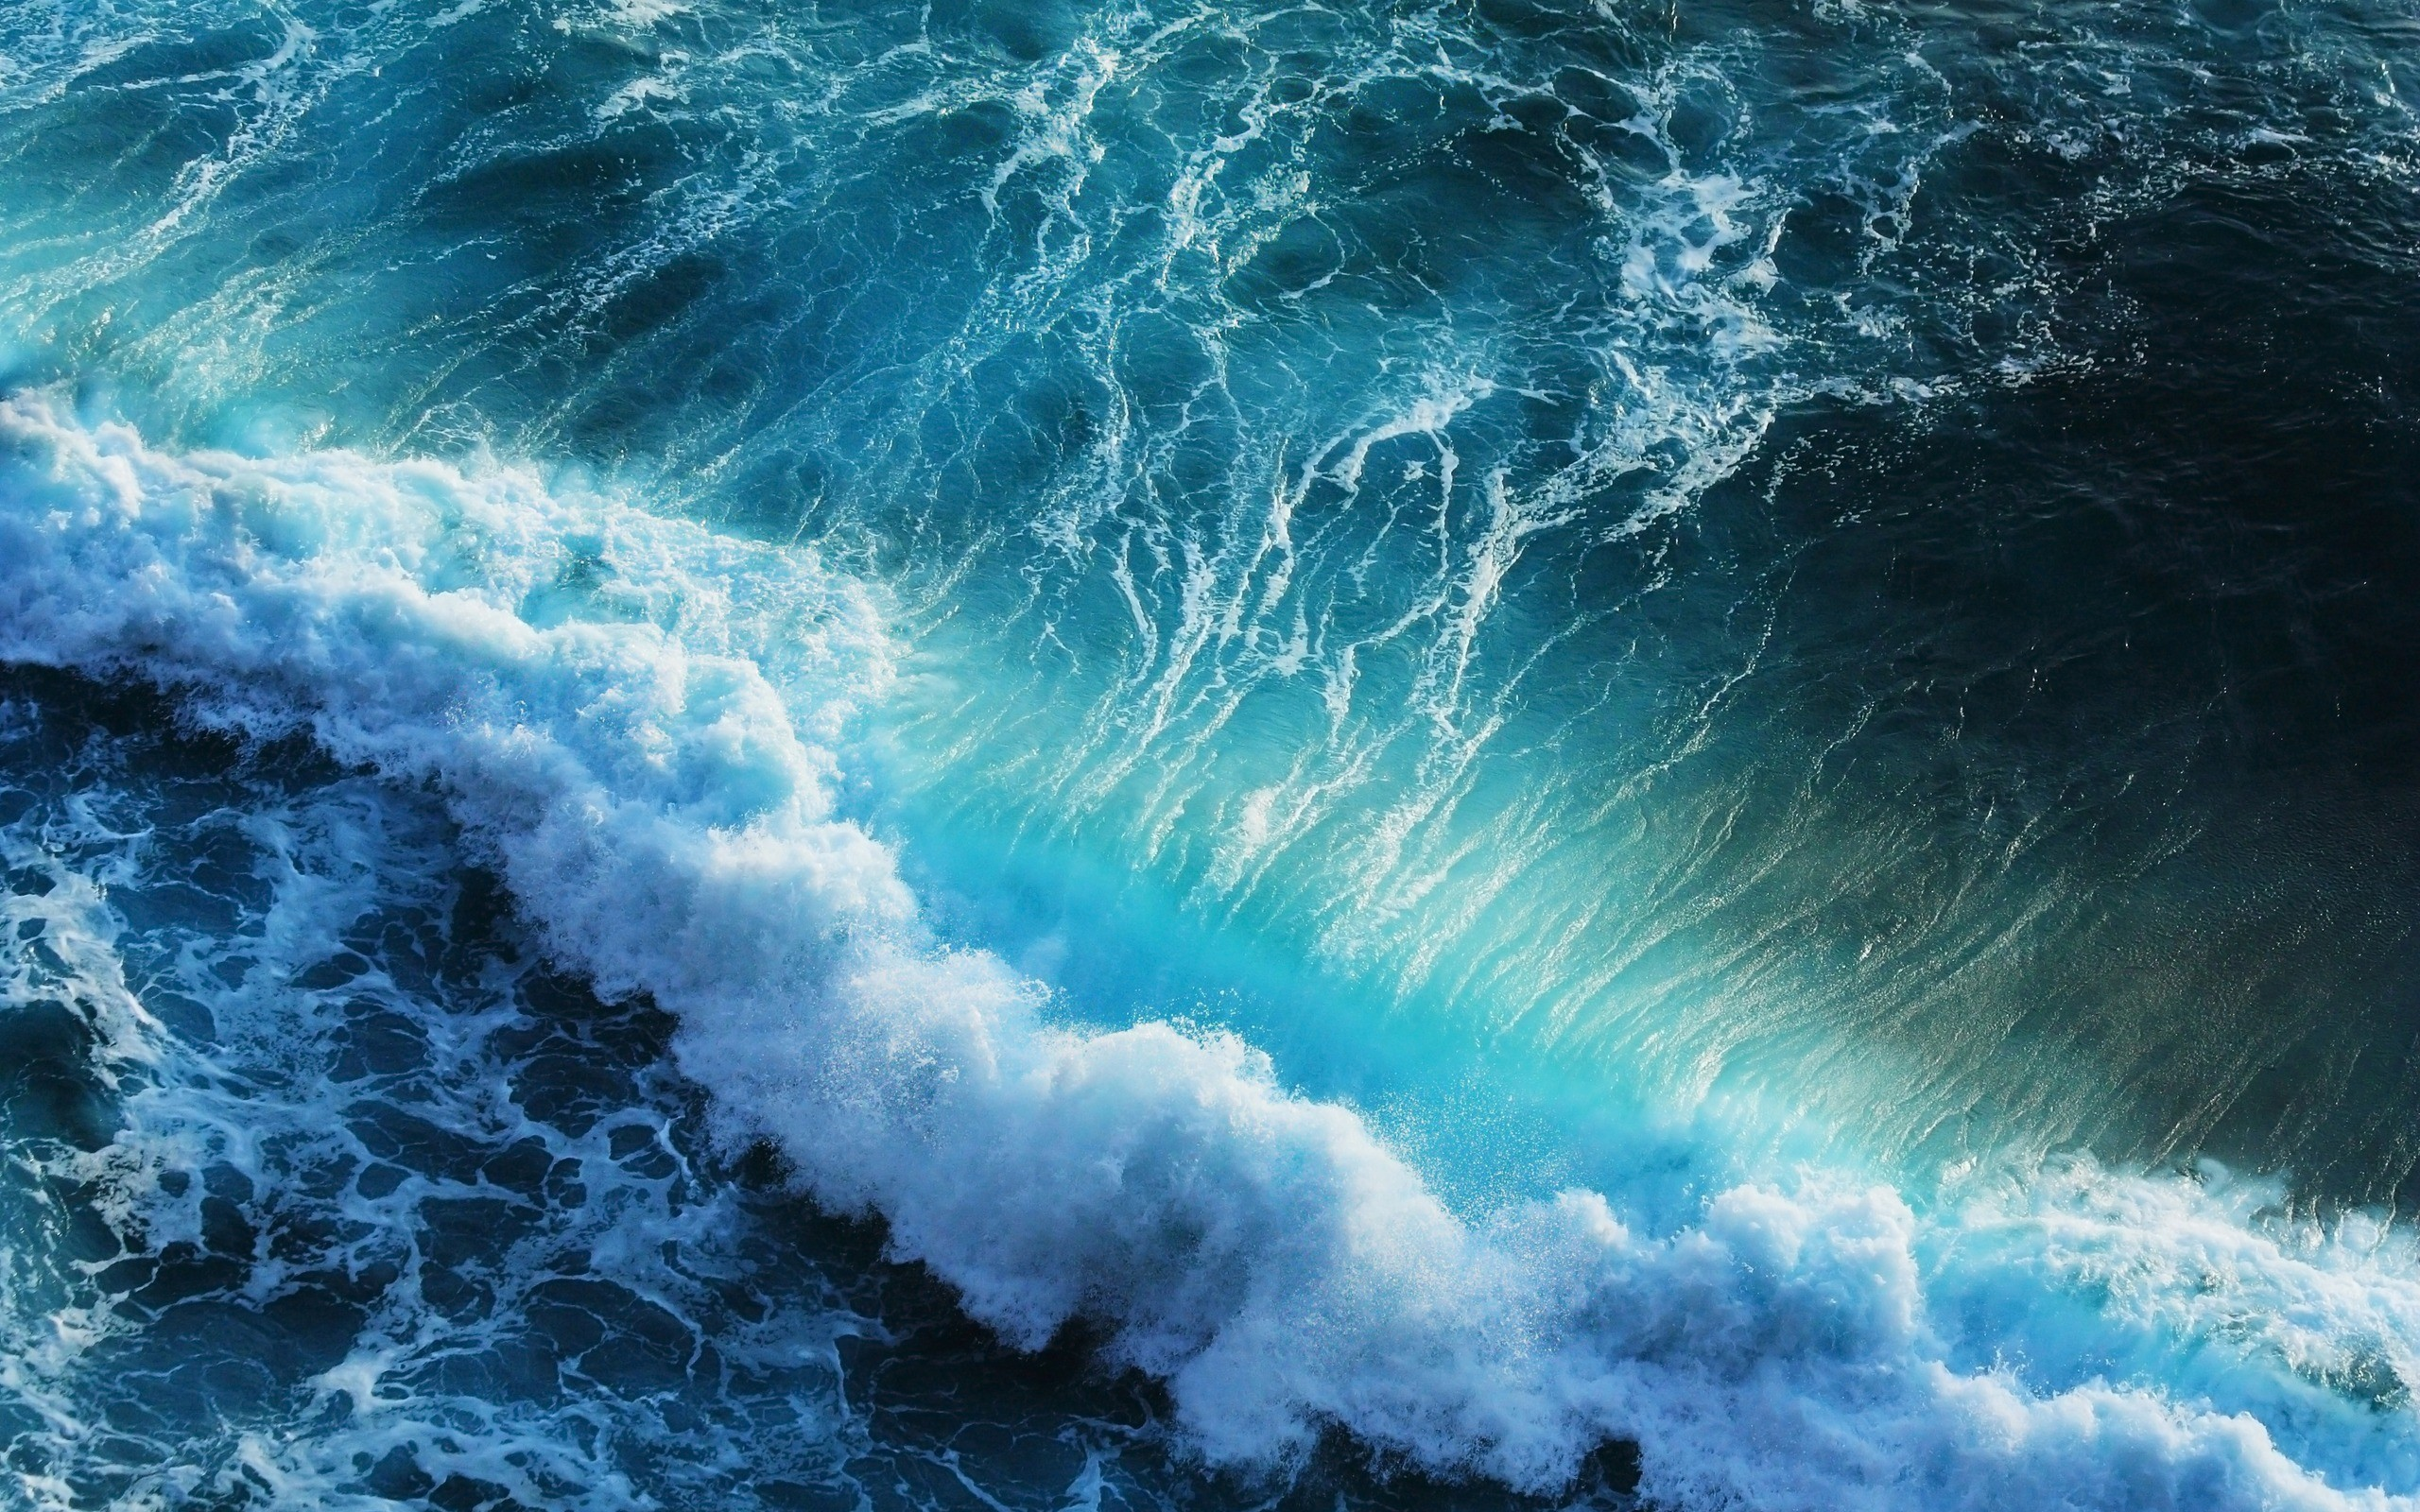 2560x1600 Ocean Waves Wallpaper